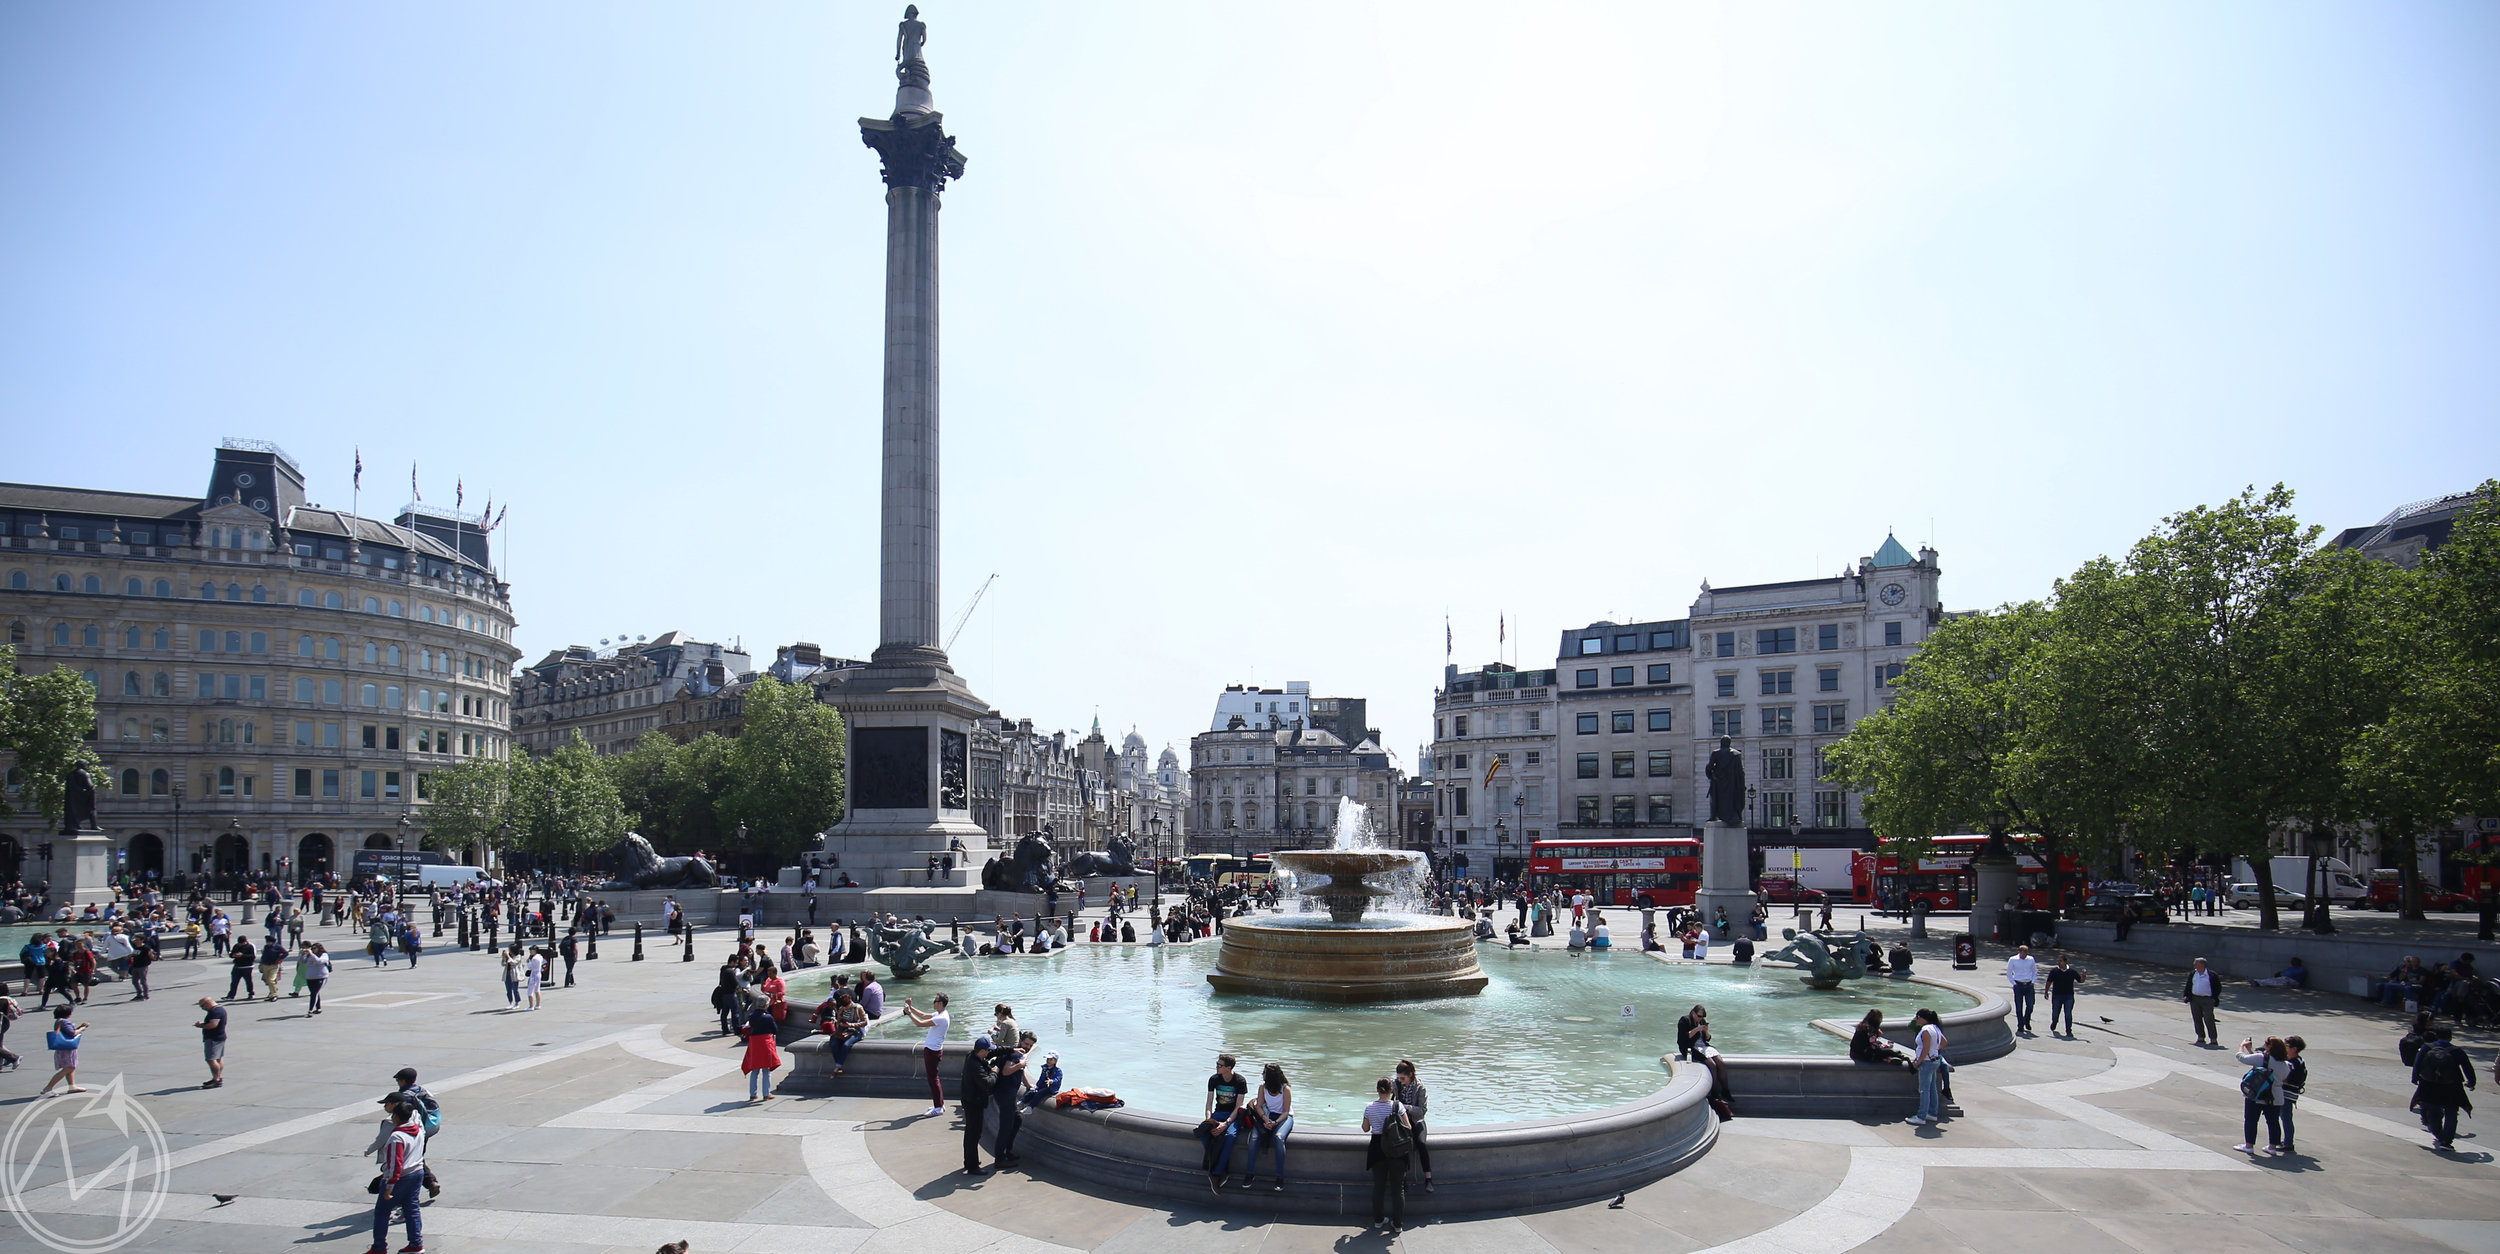 trafalgar square! some of the best people watching anywhere.